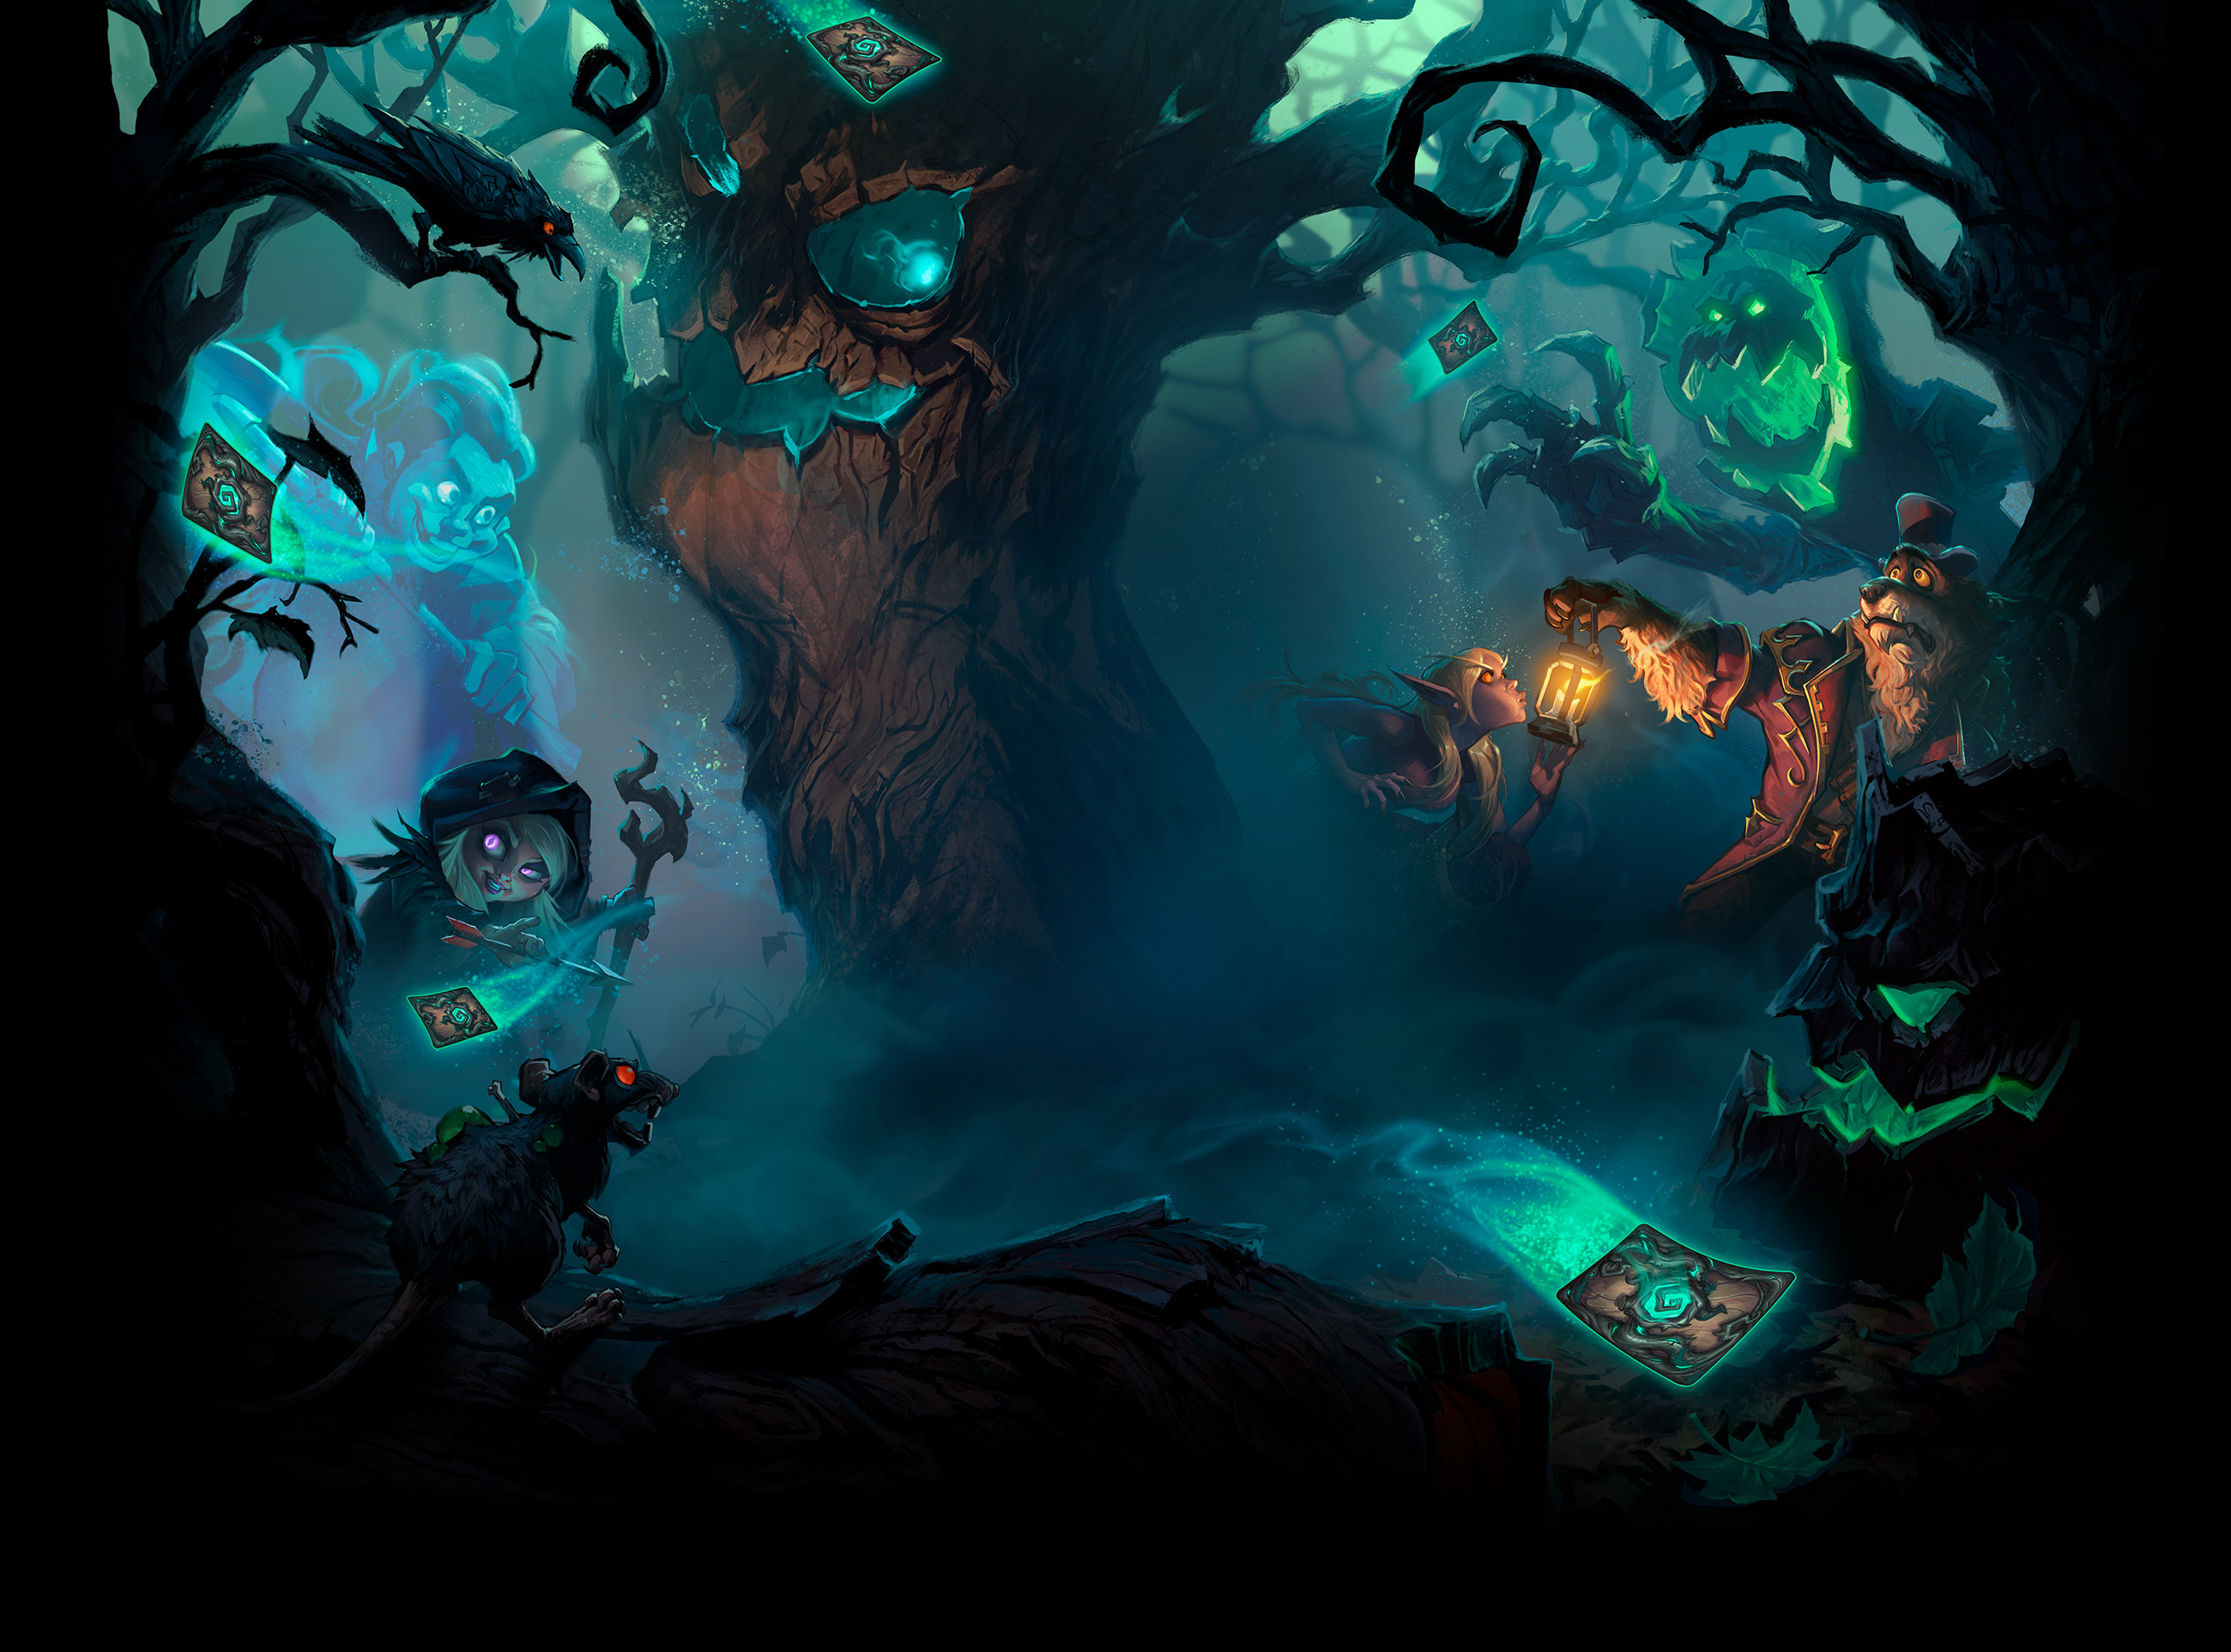 Hearthstone's Next Expansion The Witchwood Revealed